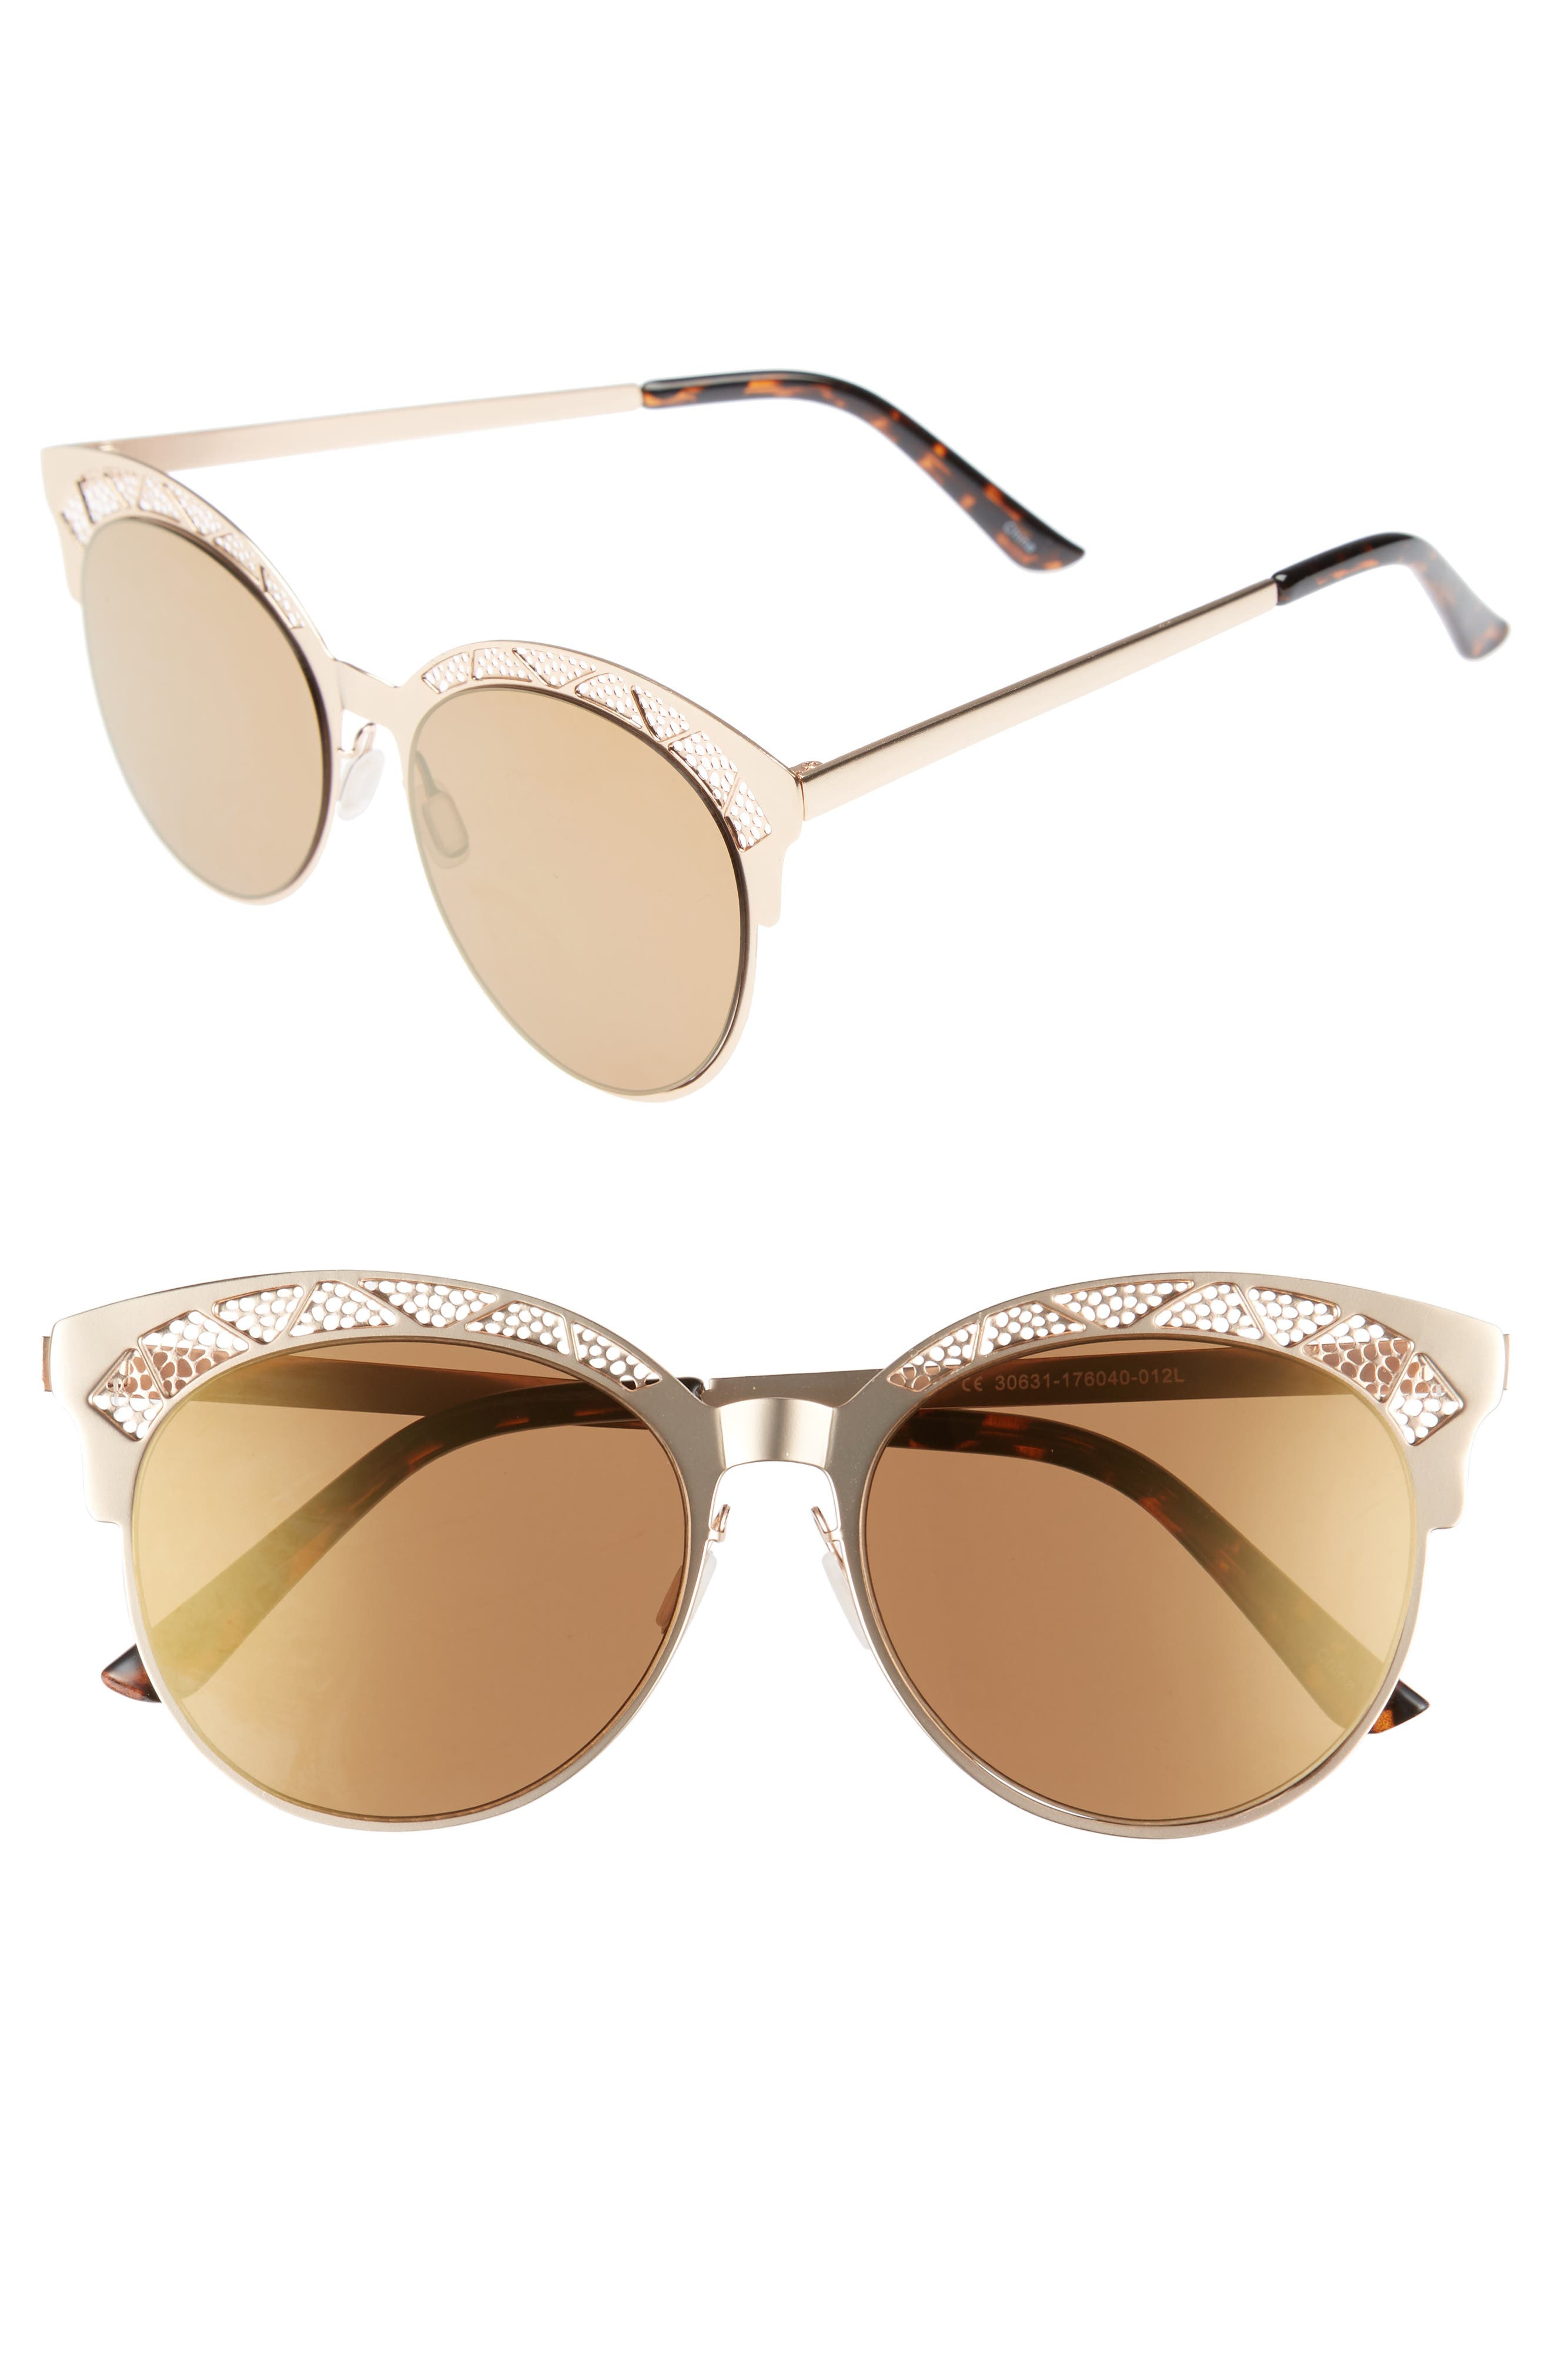 56mm Round Sunglasses,                         Main,                         color, Gold/ Brown